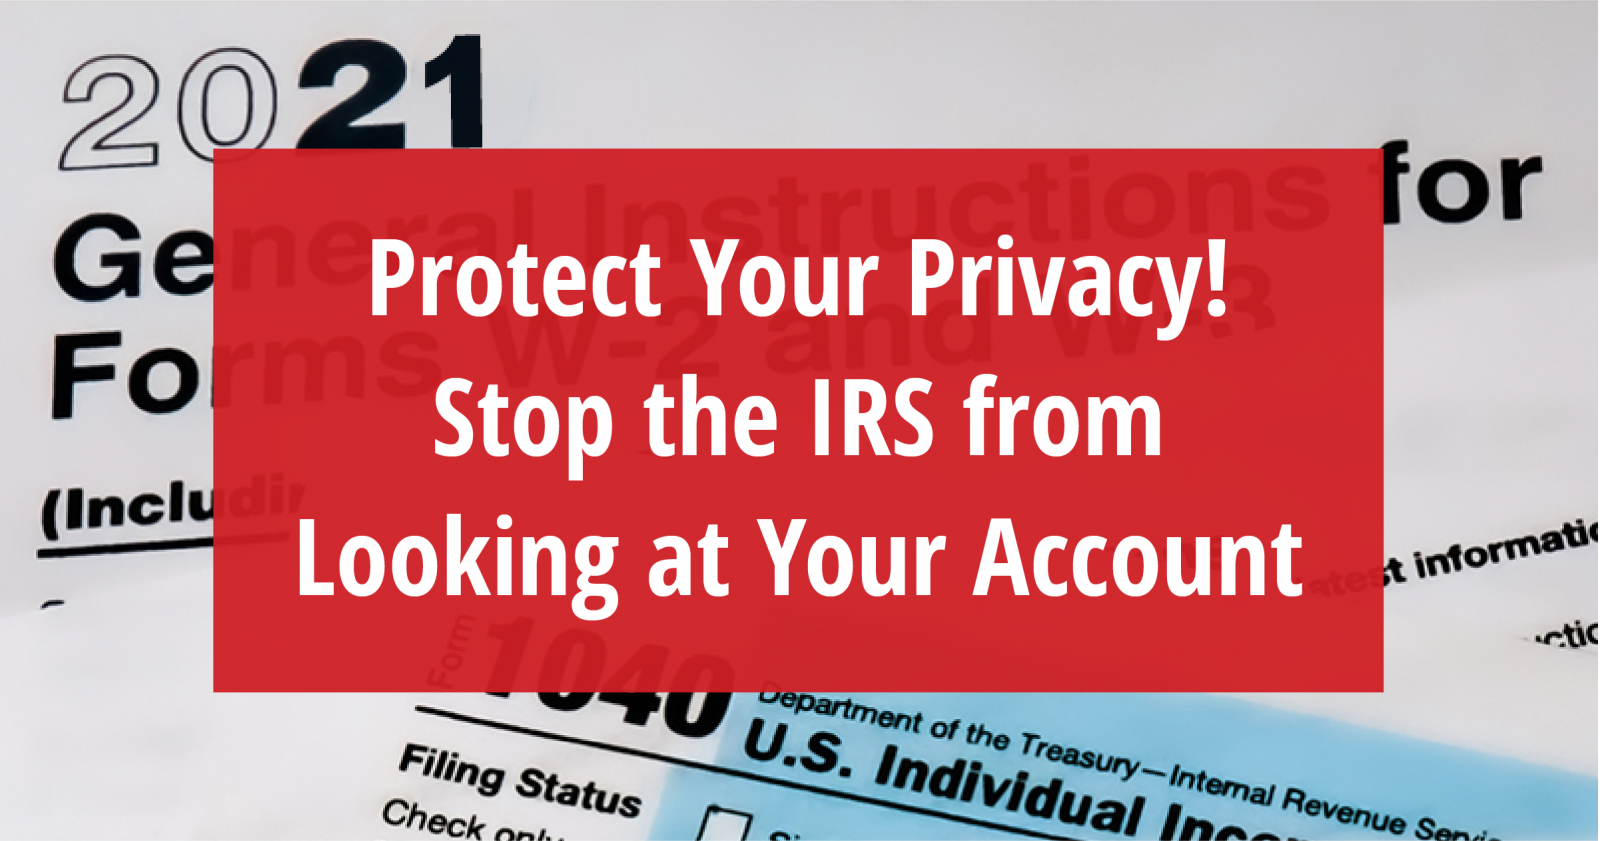 Take Action: Tell Congress to oppose new IRS reporting provisions